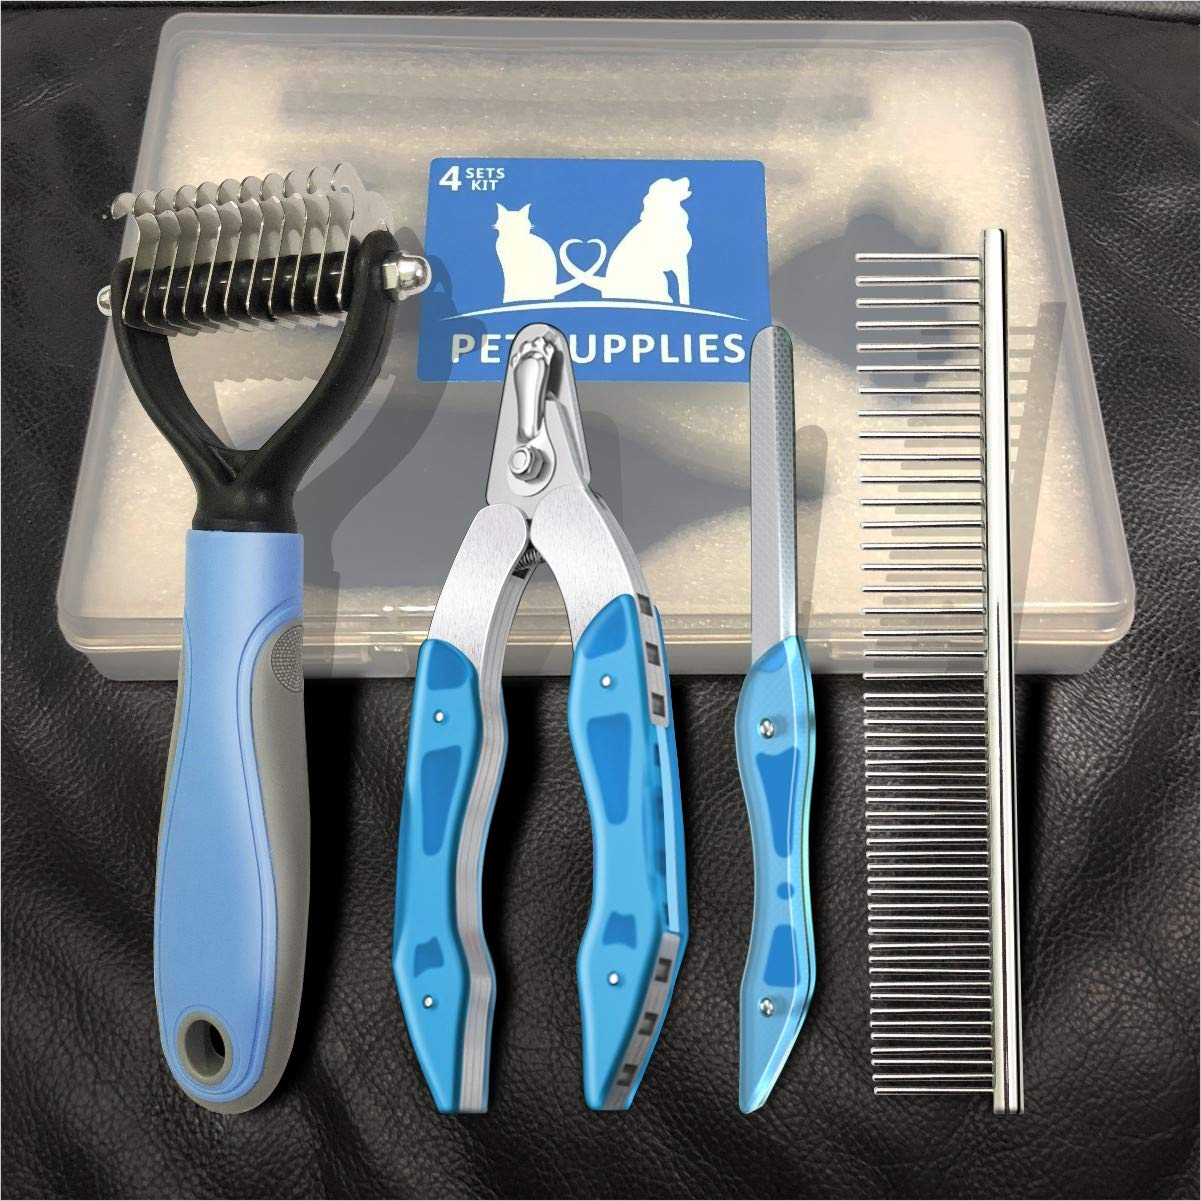 NANRE Dog Nail Clippers,Trimmer & Comb Gift Sets, Pet Grooming Tool for Dogs & Cats